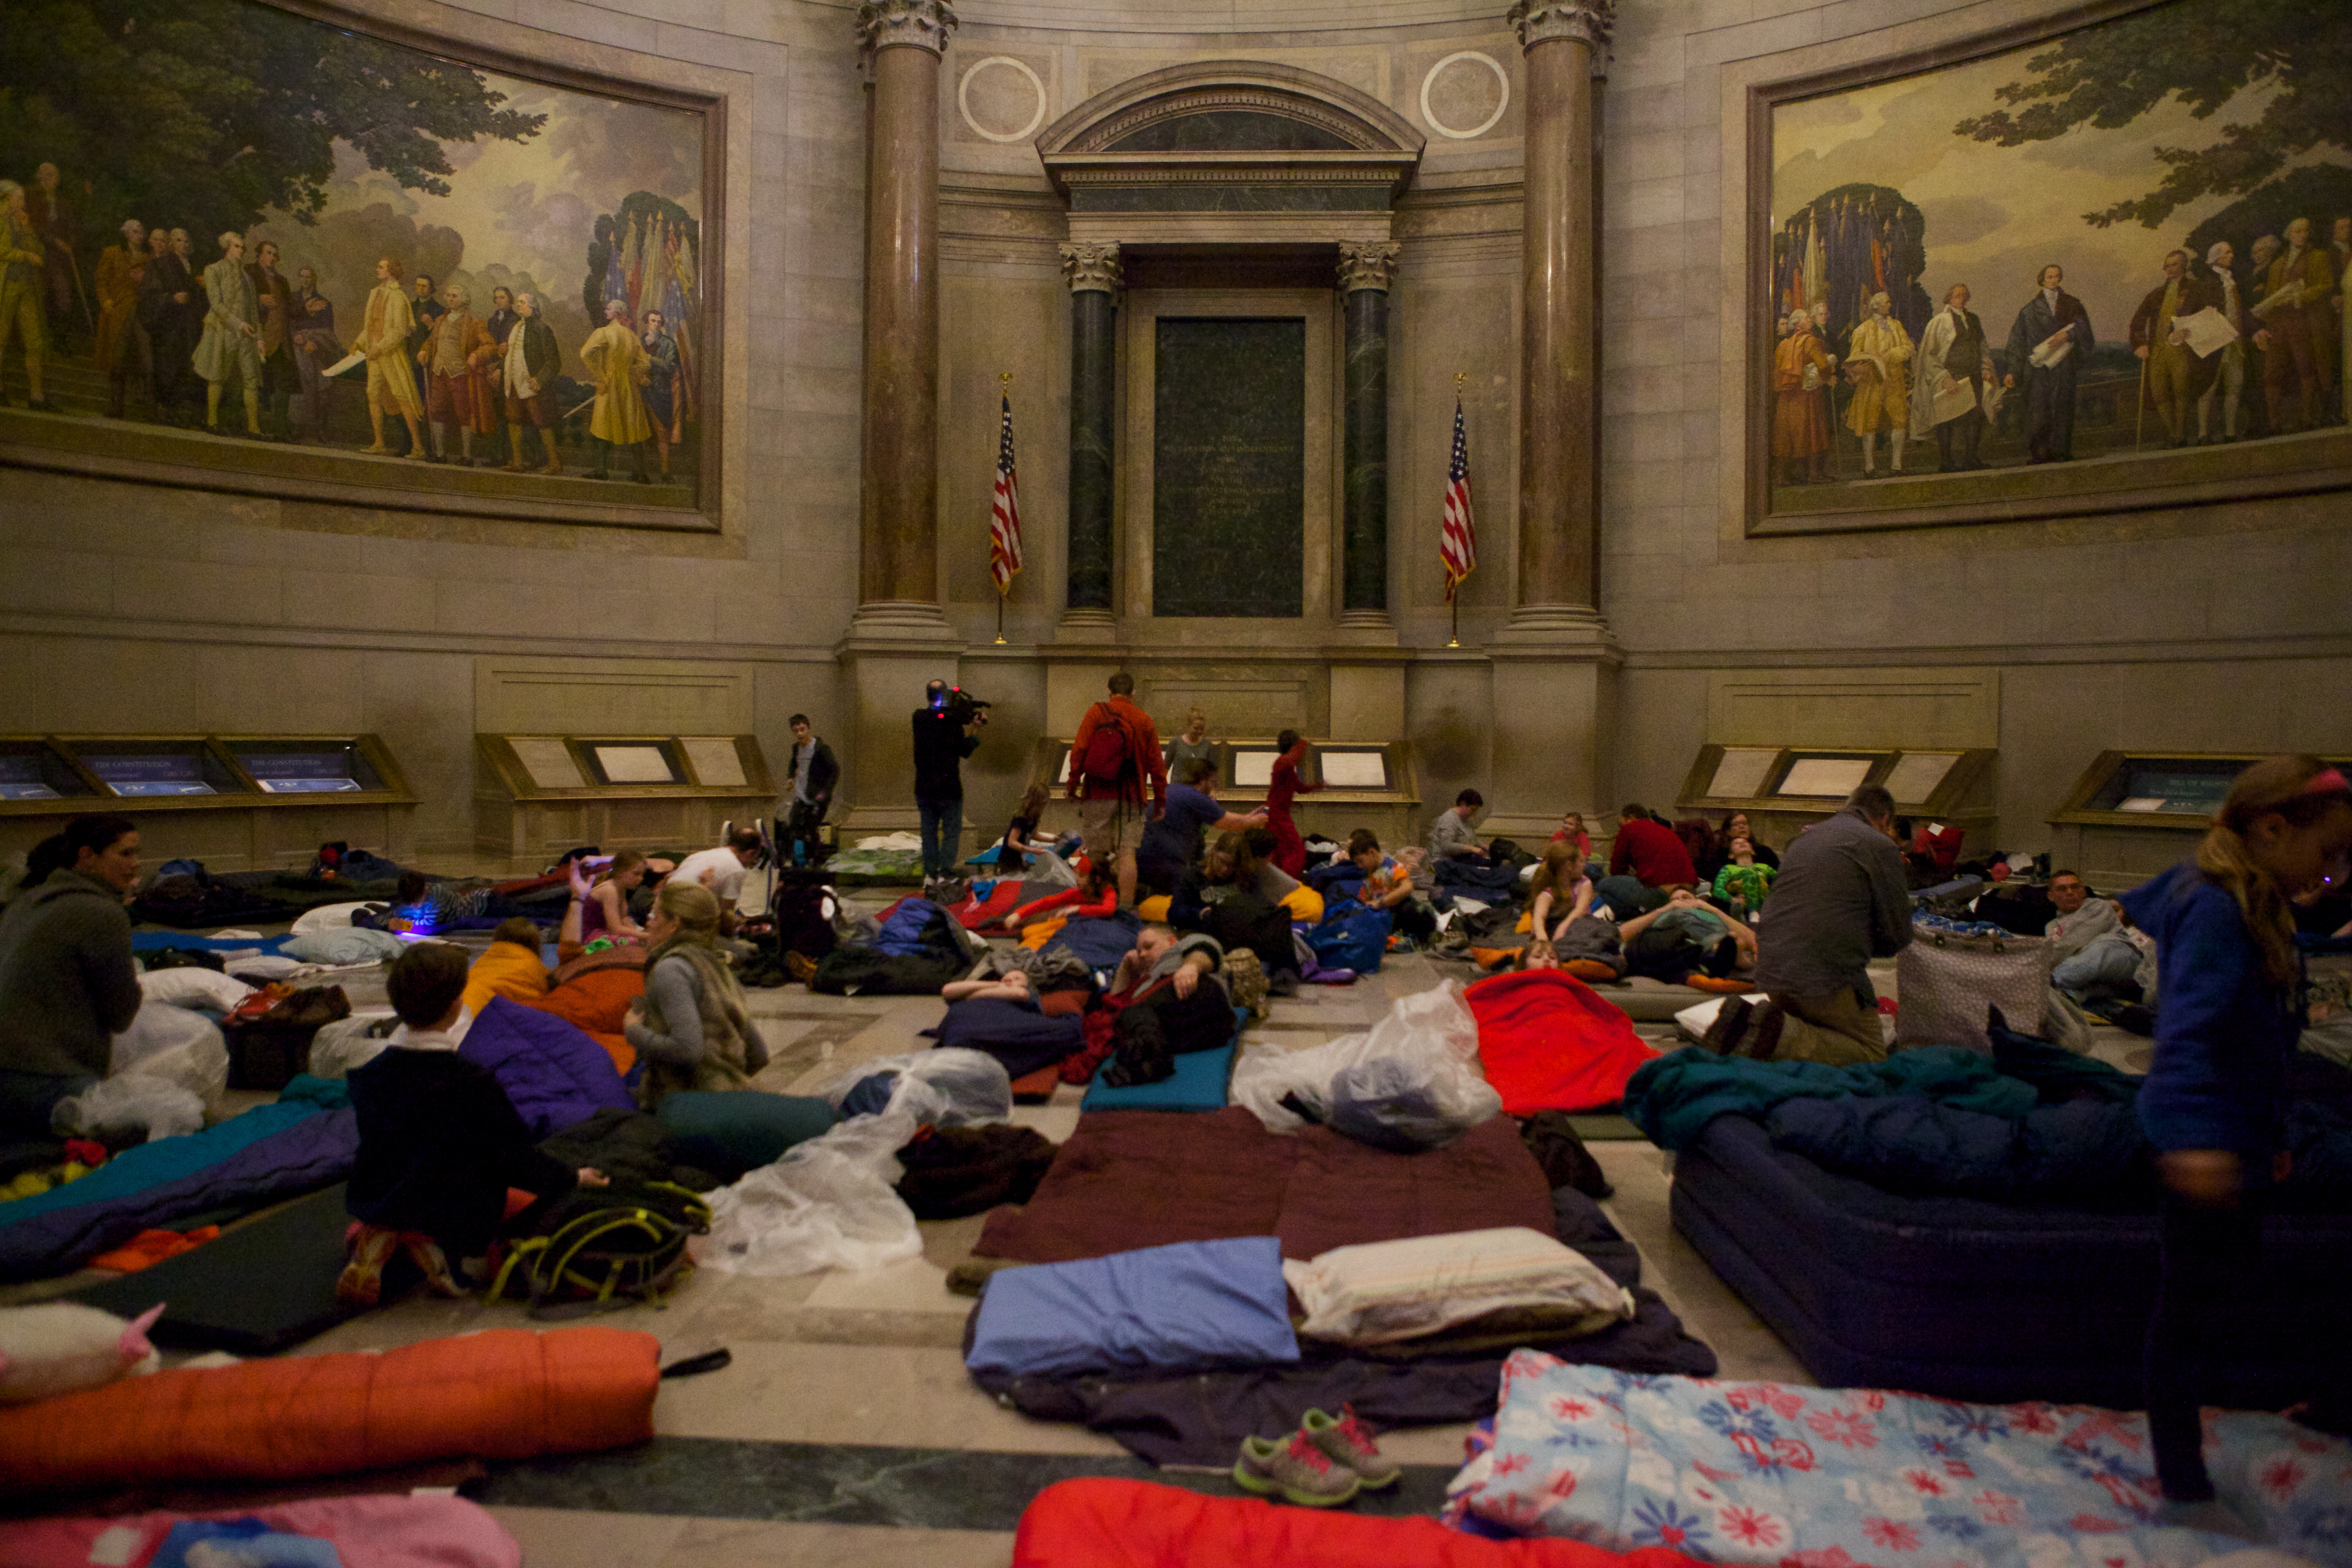 Two more sleepover opportunities at the National Archives ...